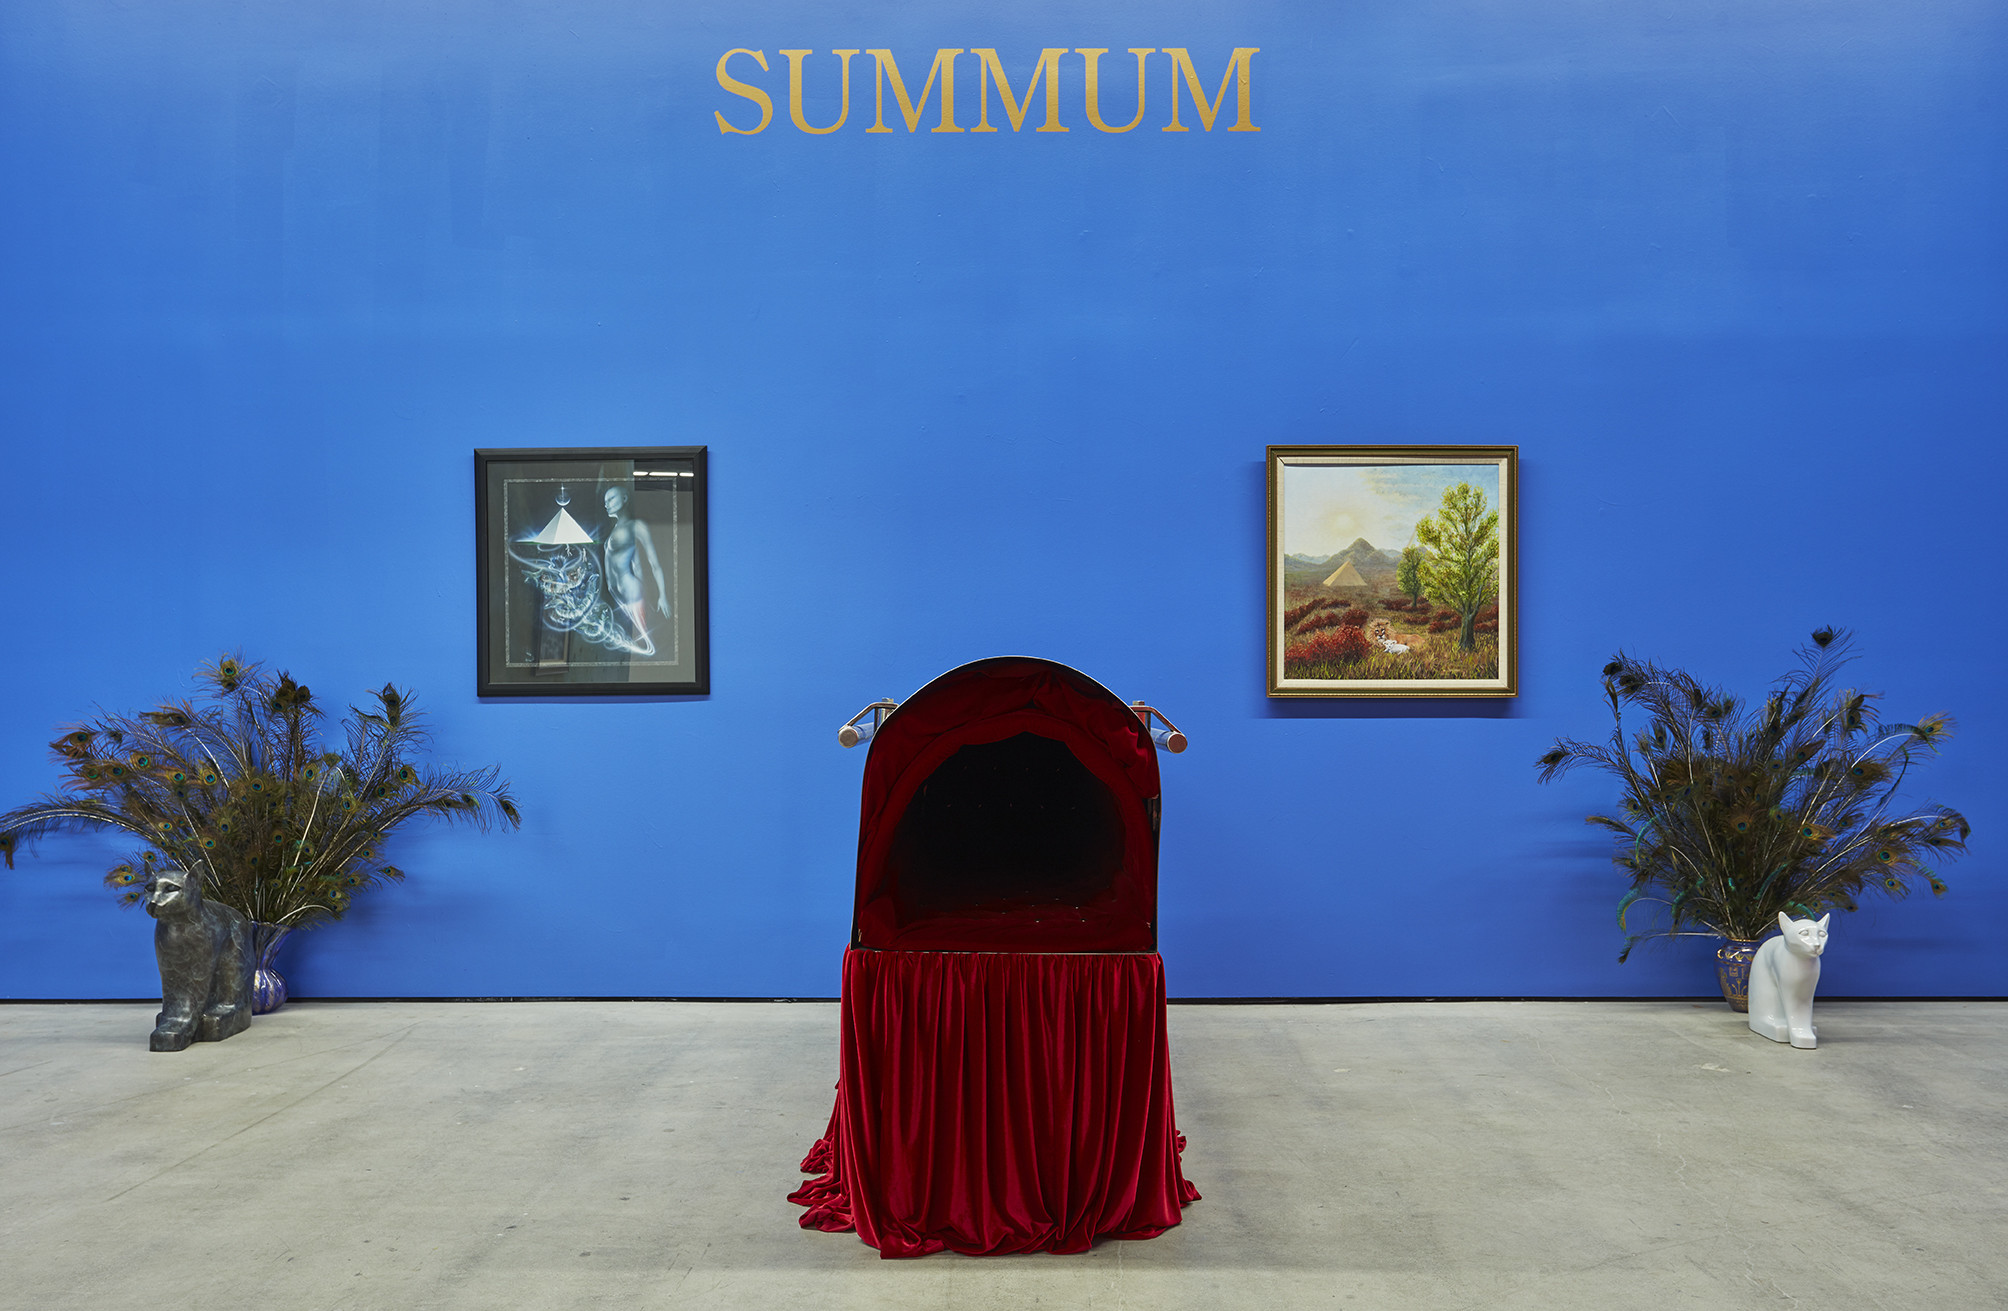 An installation at Nicodim shows objects created and employed by members of the religious group Summum, which draws from ancient Egyptian religion.